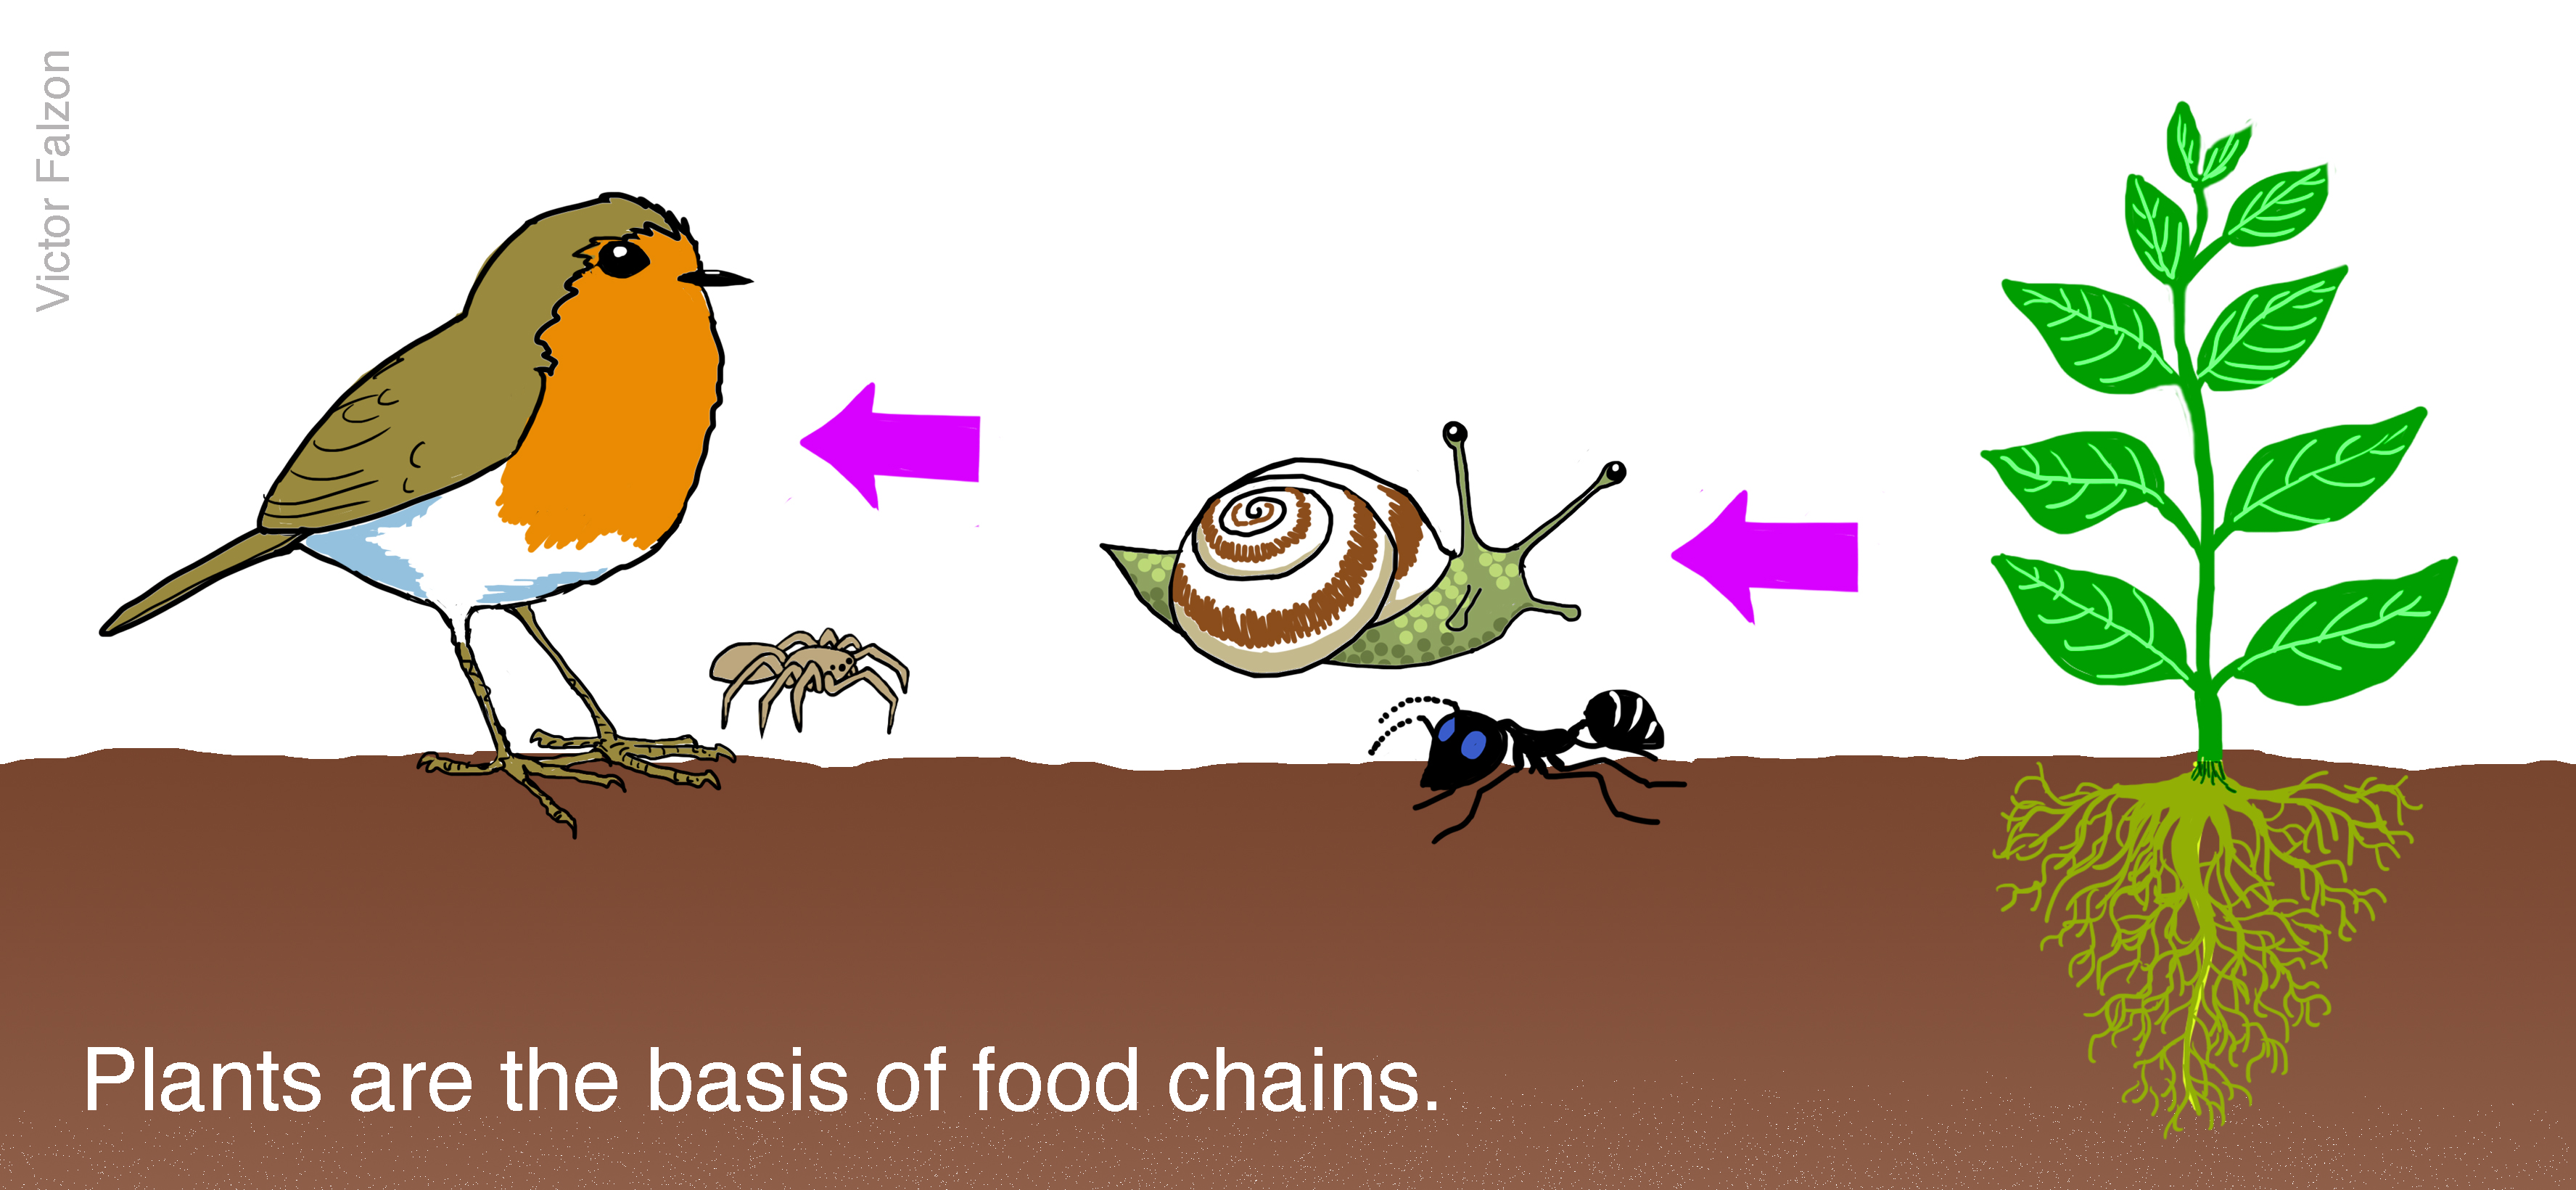 Plants are the basis of food chains.